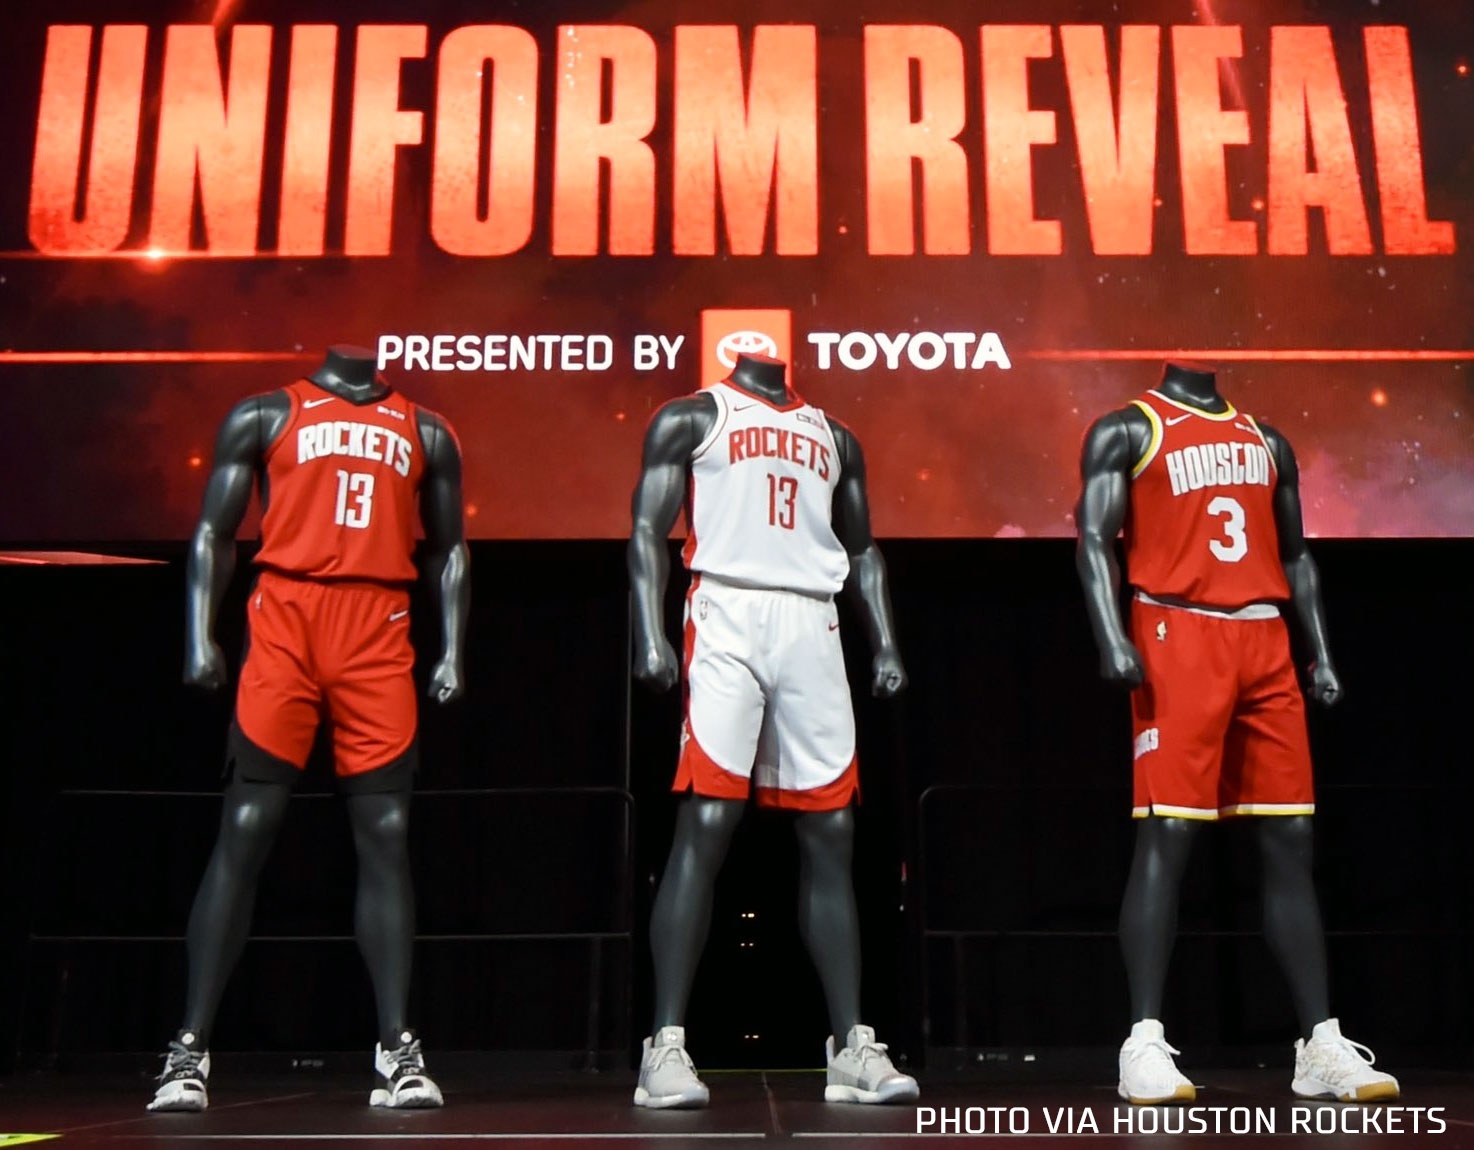 Nba New Uniforms 2020 Here comes the 2020 jerseys   nba talk   2K Gamer